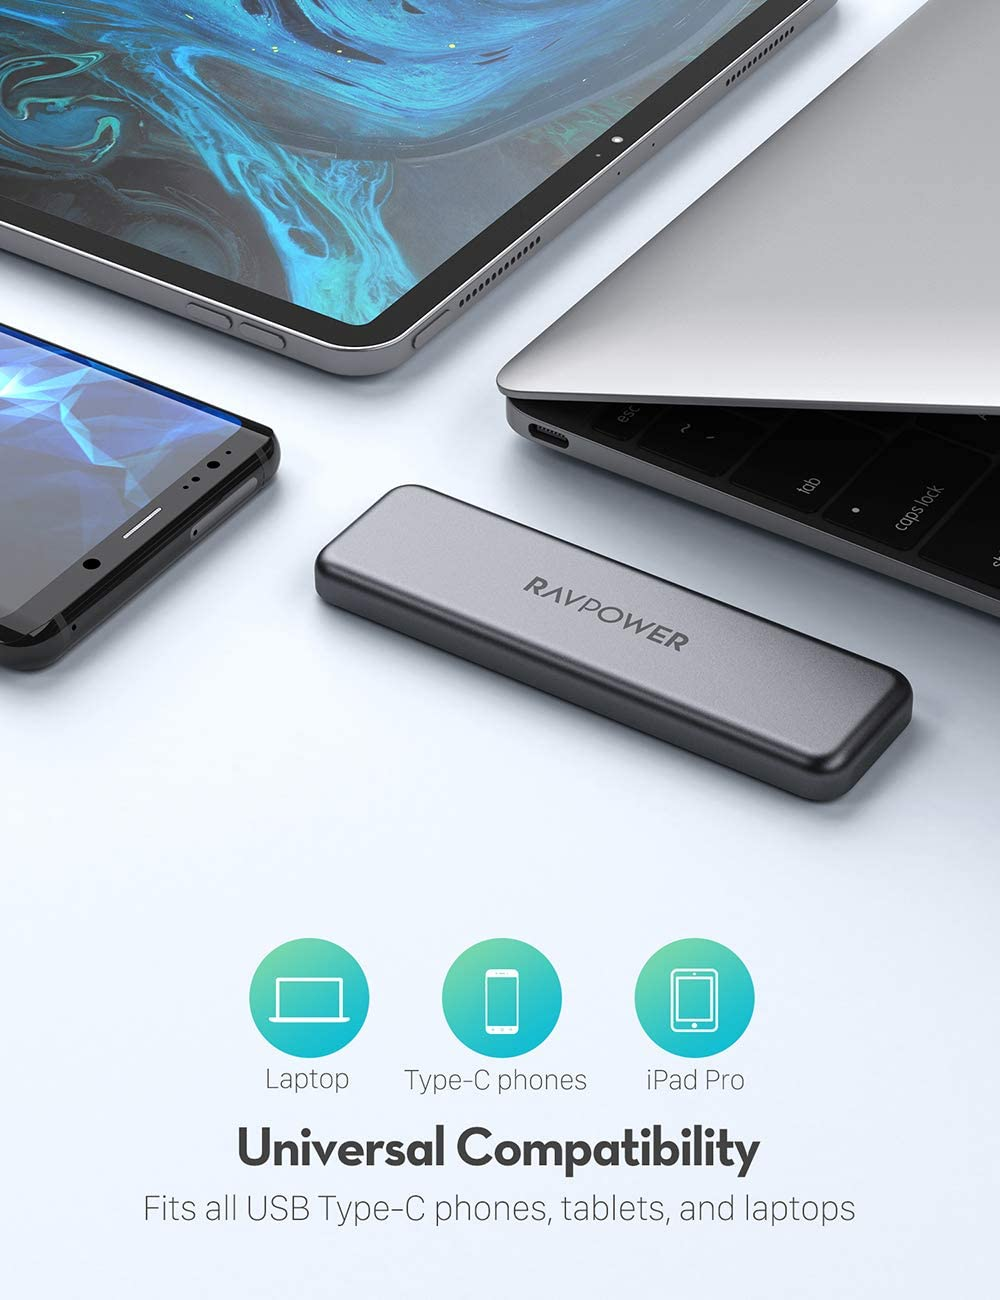 RAVPower Portable External SSD Pro, 1TB Hard Drive with 540MB/S Data Transfer, NAND Flash, USB 3.1 Gen 2 Interface